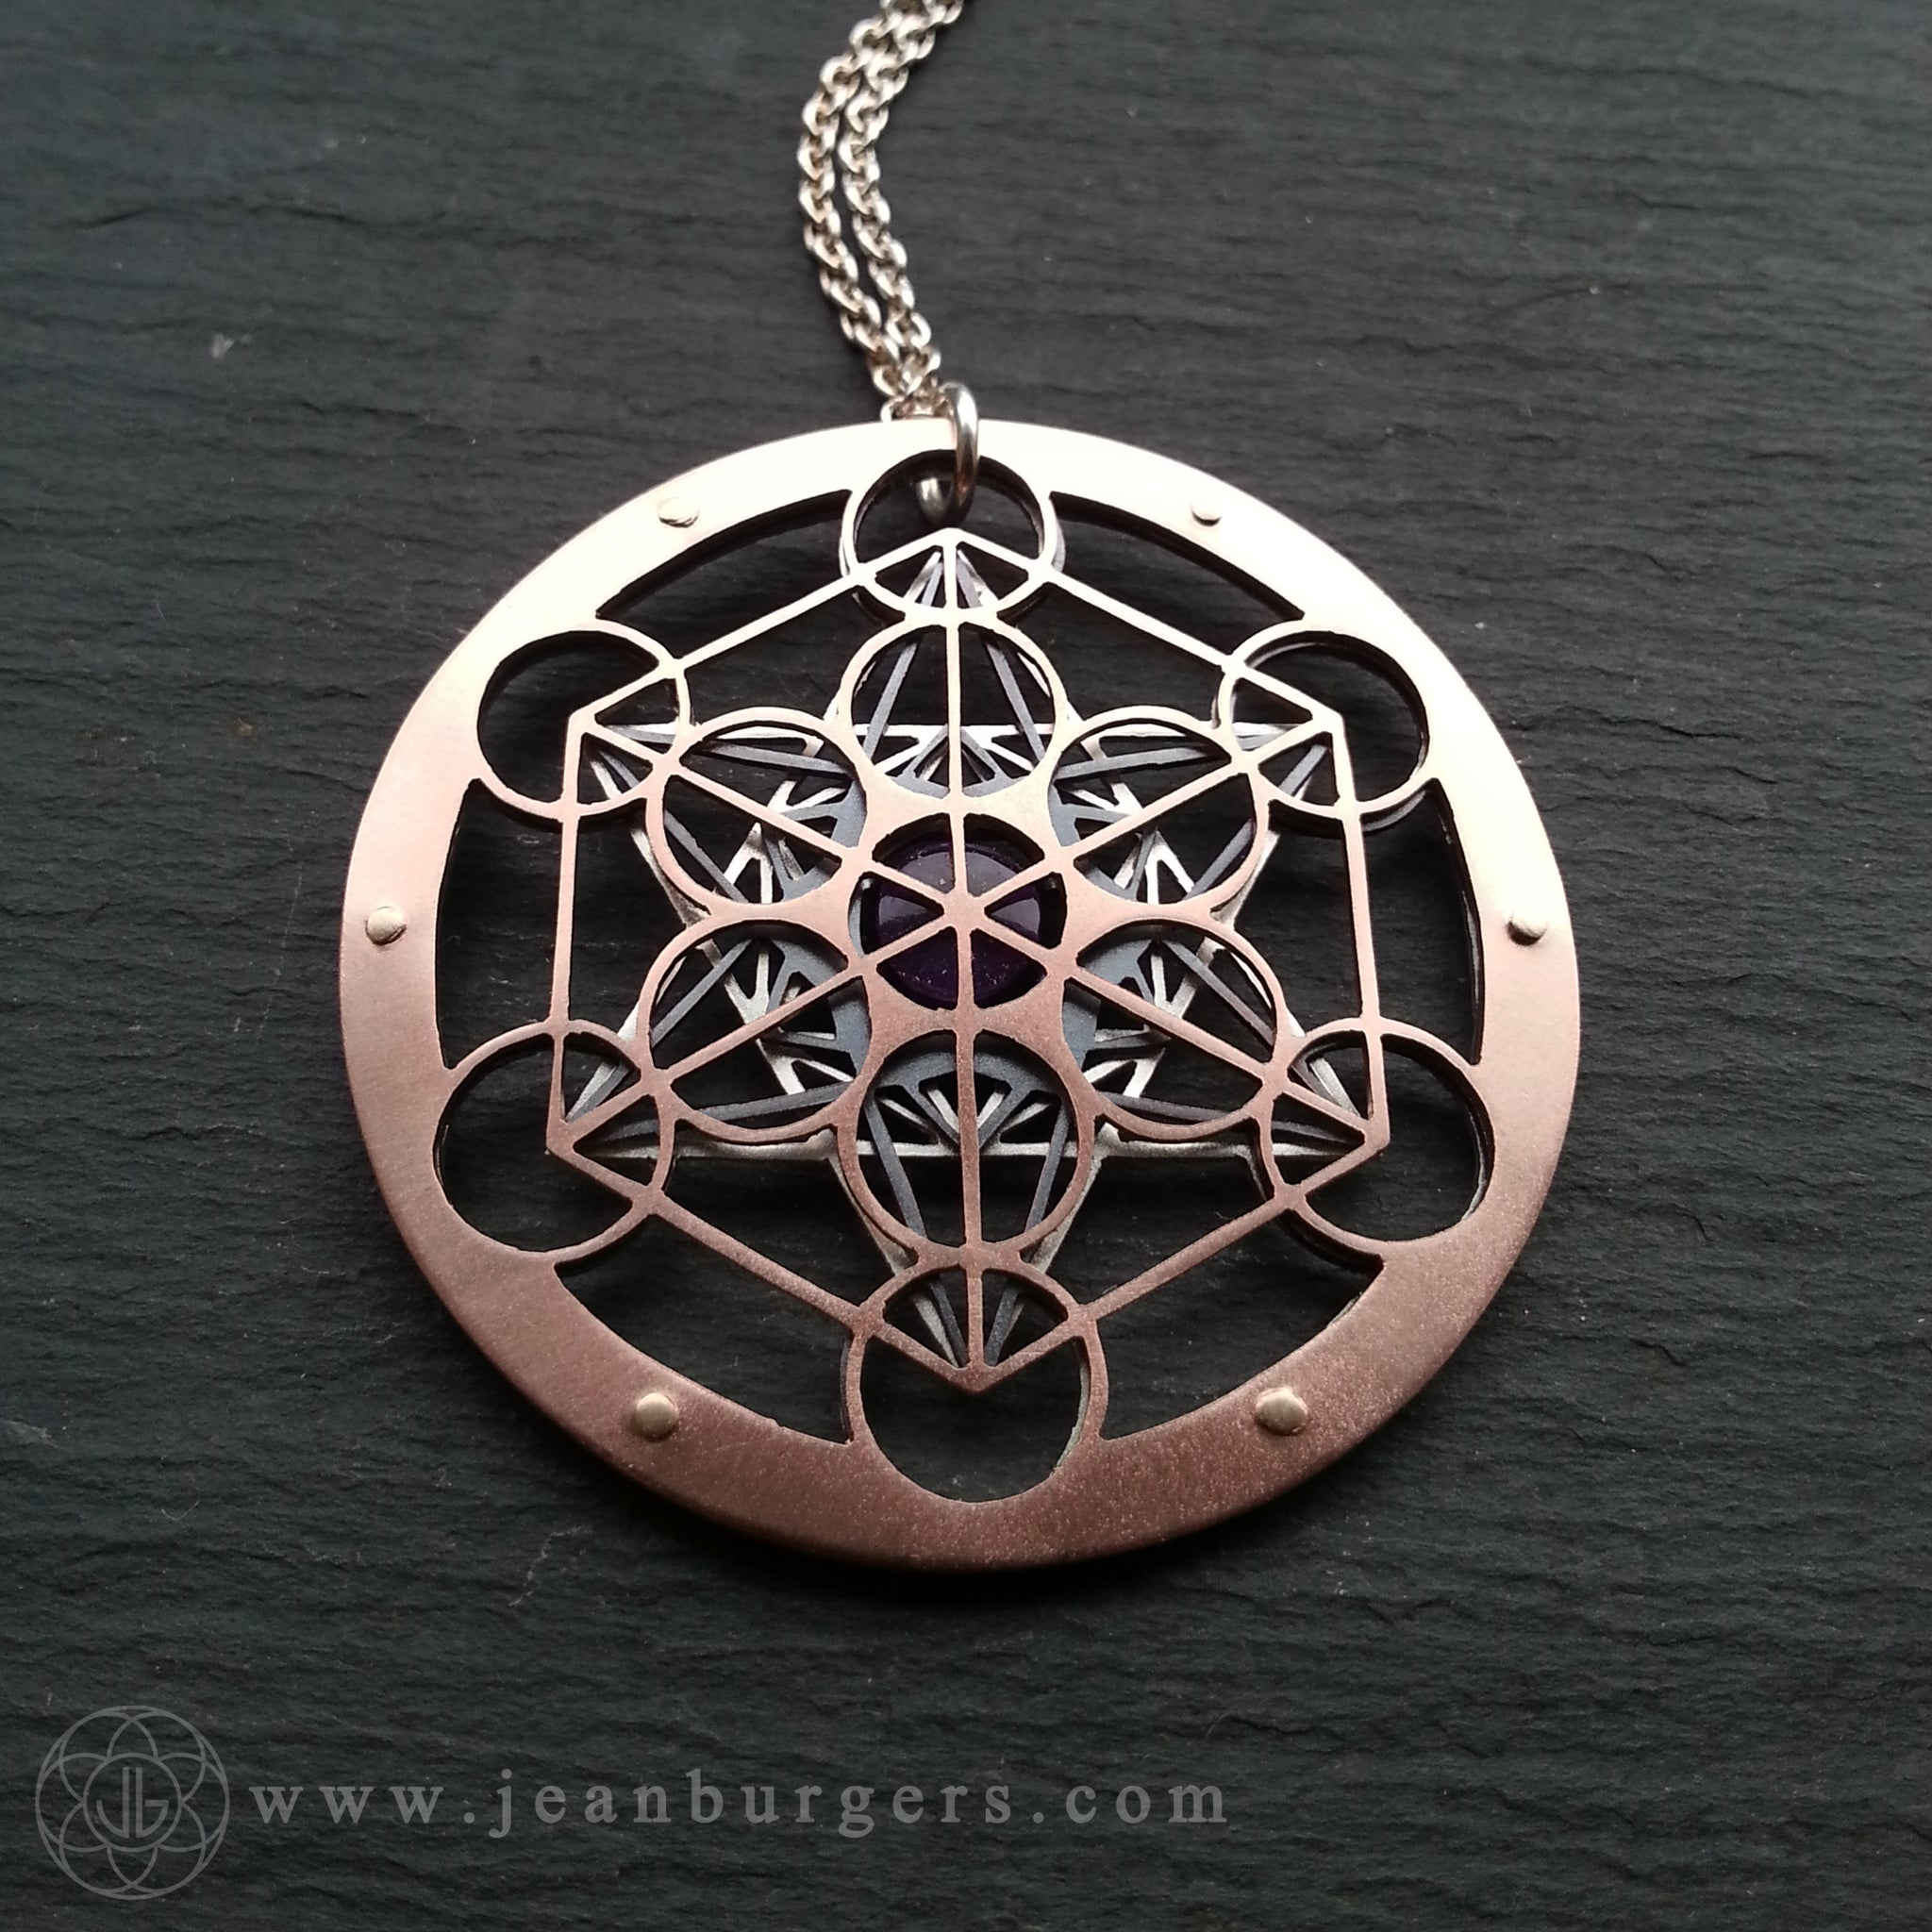 Metatrons cube pendant choose your own gemstone jean burgers metatrons cube pendant choose your own gemstone aloadofball Gallery